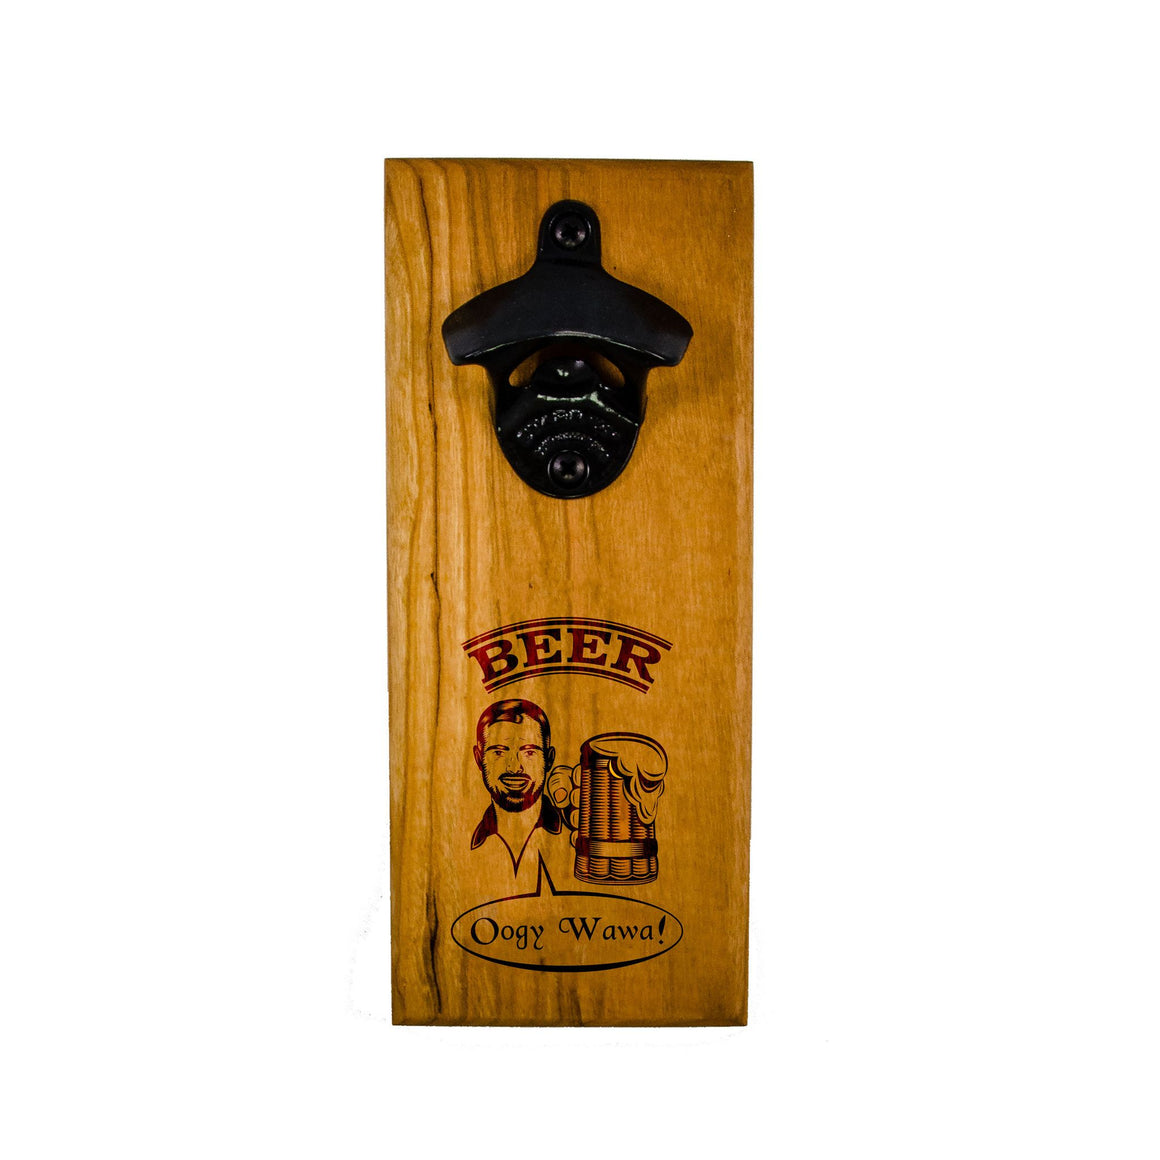 Wall Mount Bottle Opener - Beer Man - Bottle Opener - Cherry / Proost / Black Opener - District 31 - 1